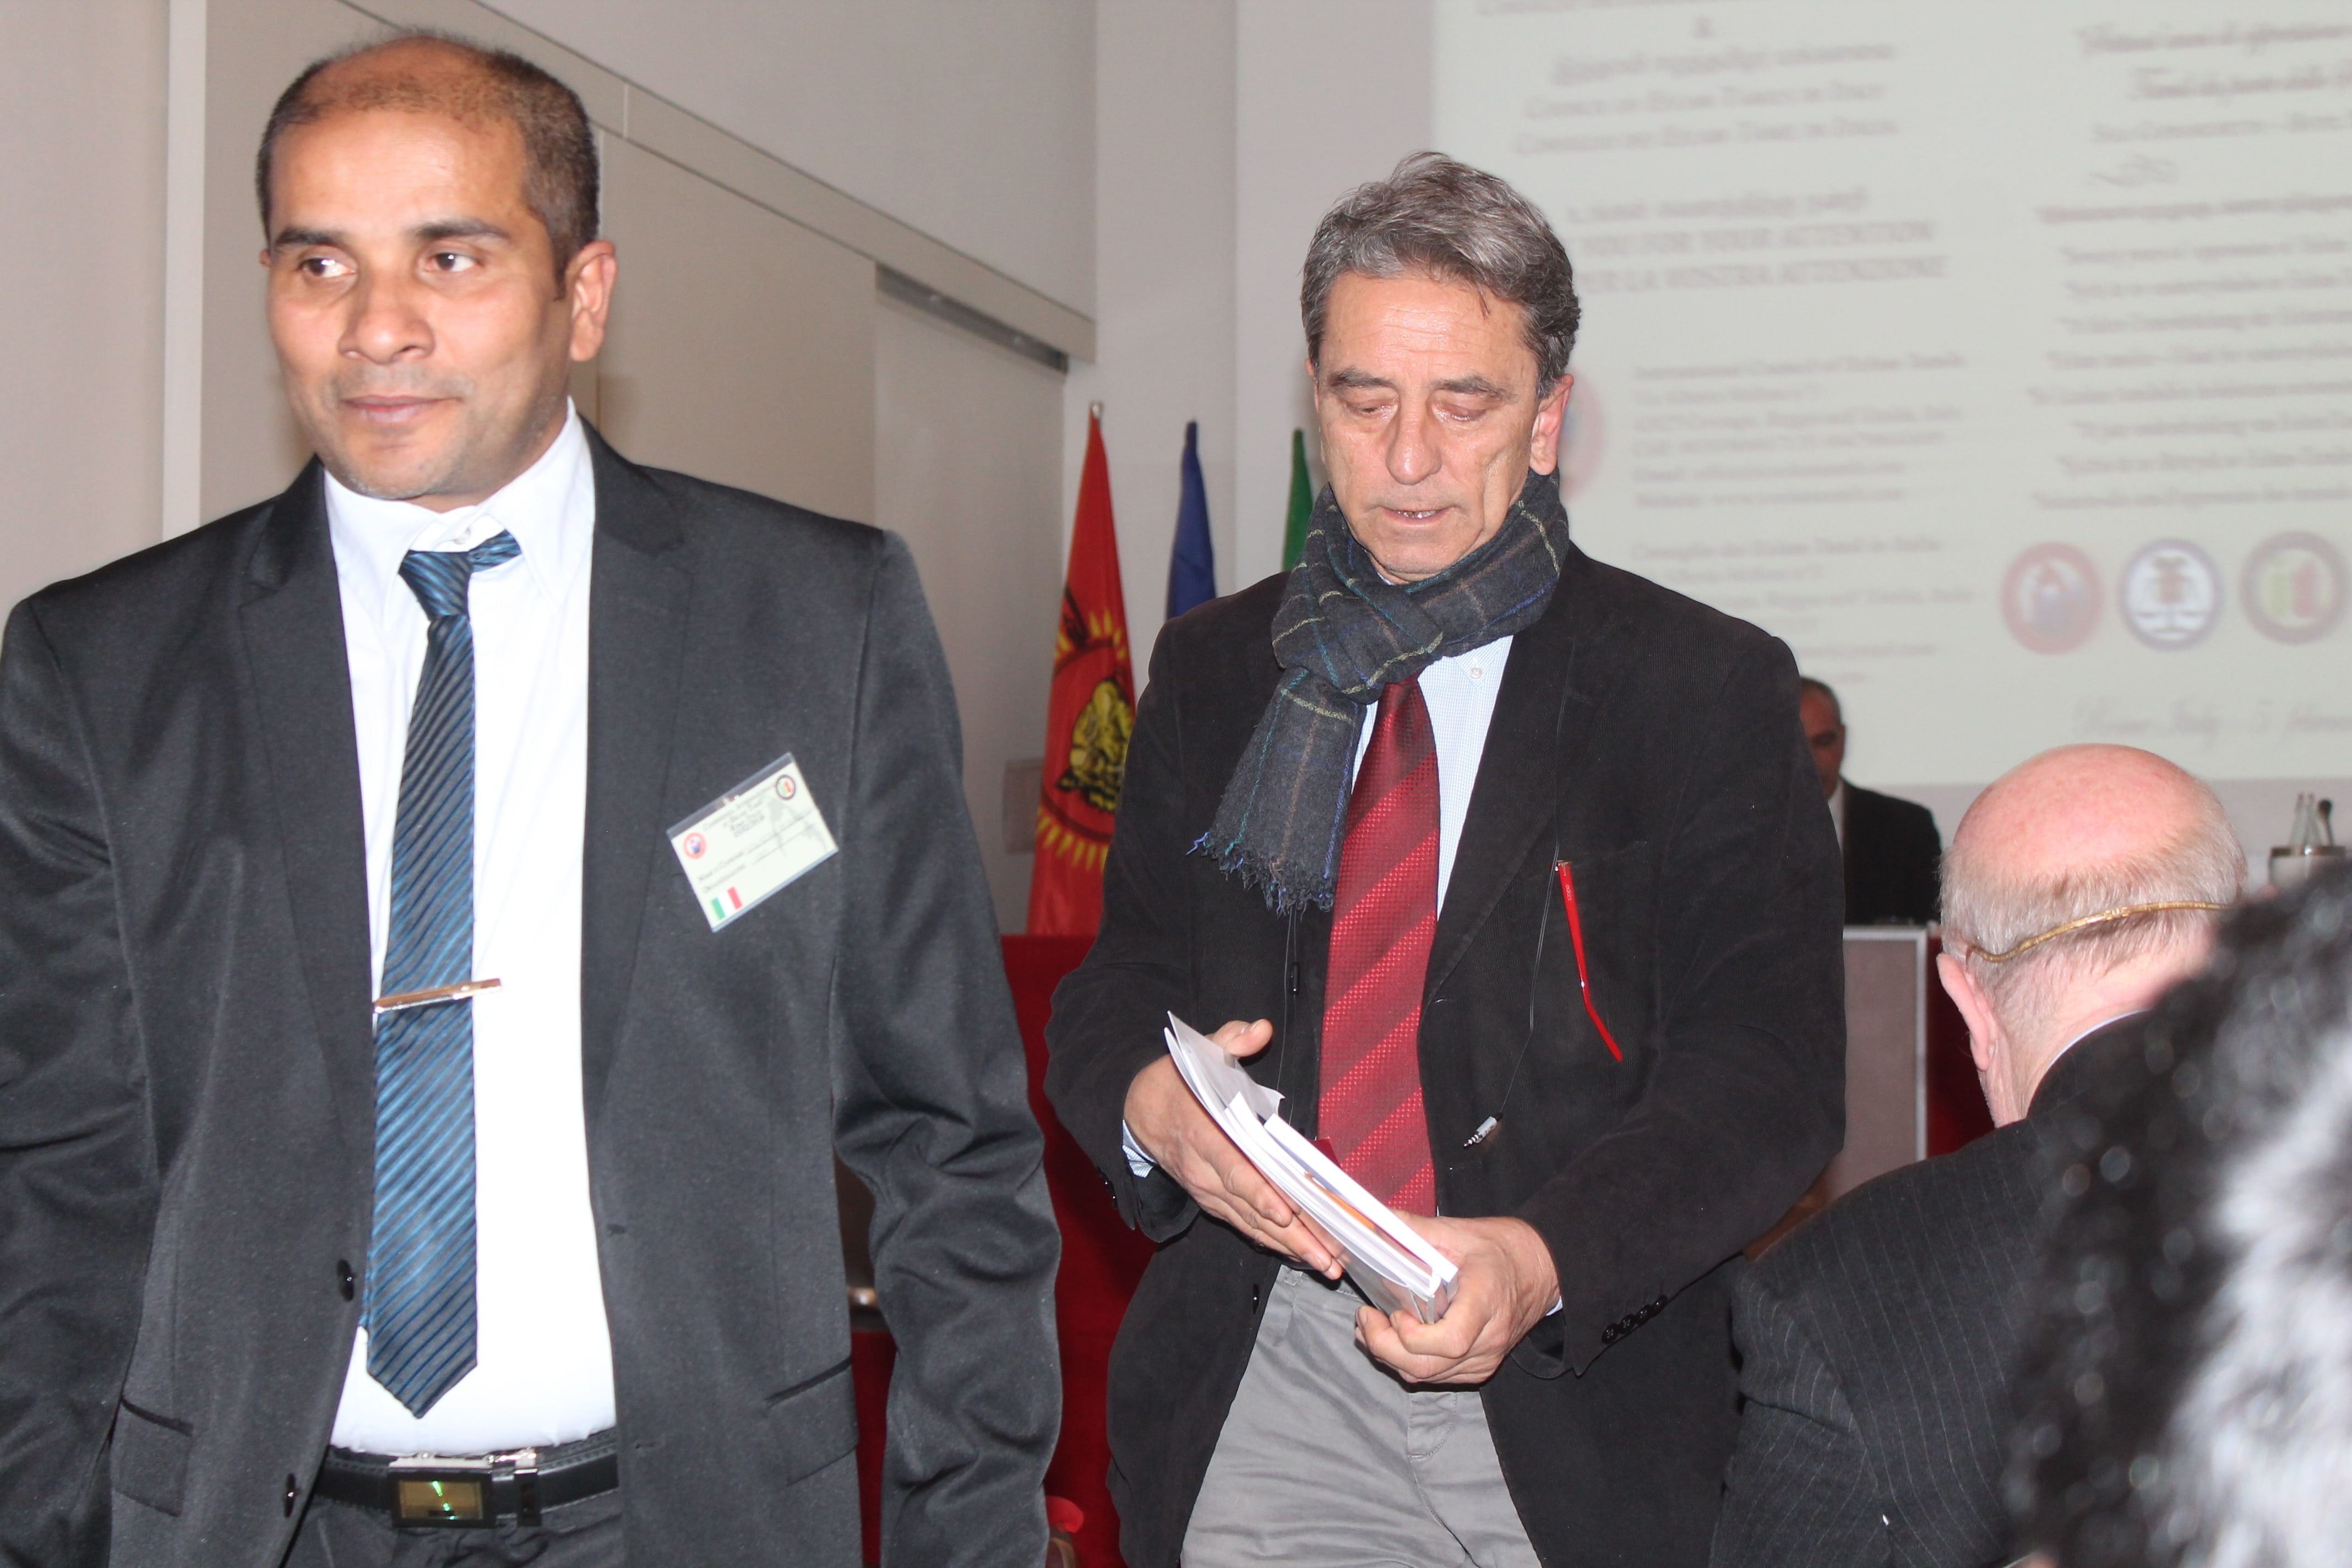 rome conference icet (25)